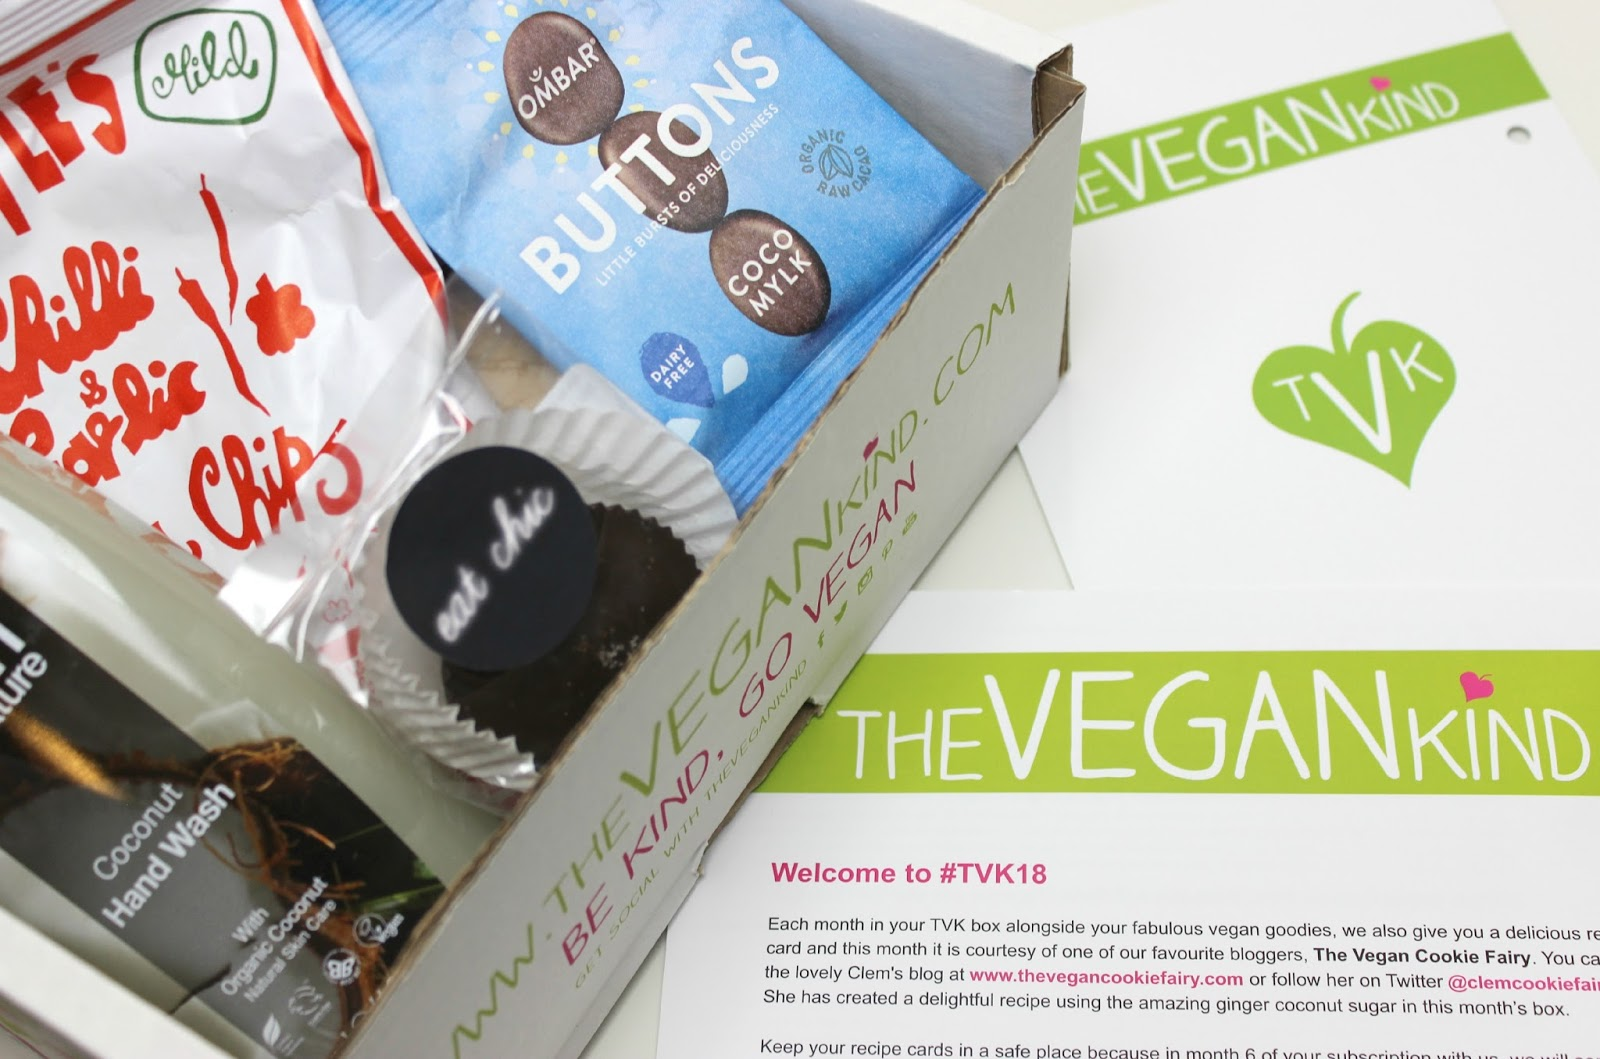 TheVeganKind April 2015 Box